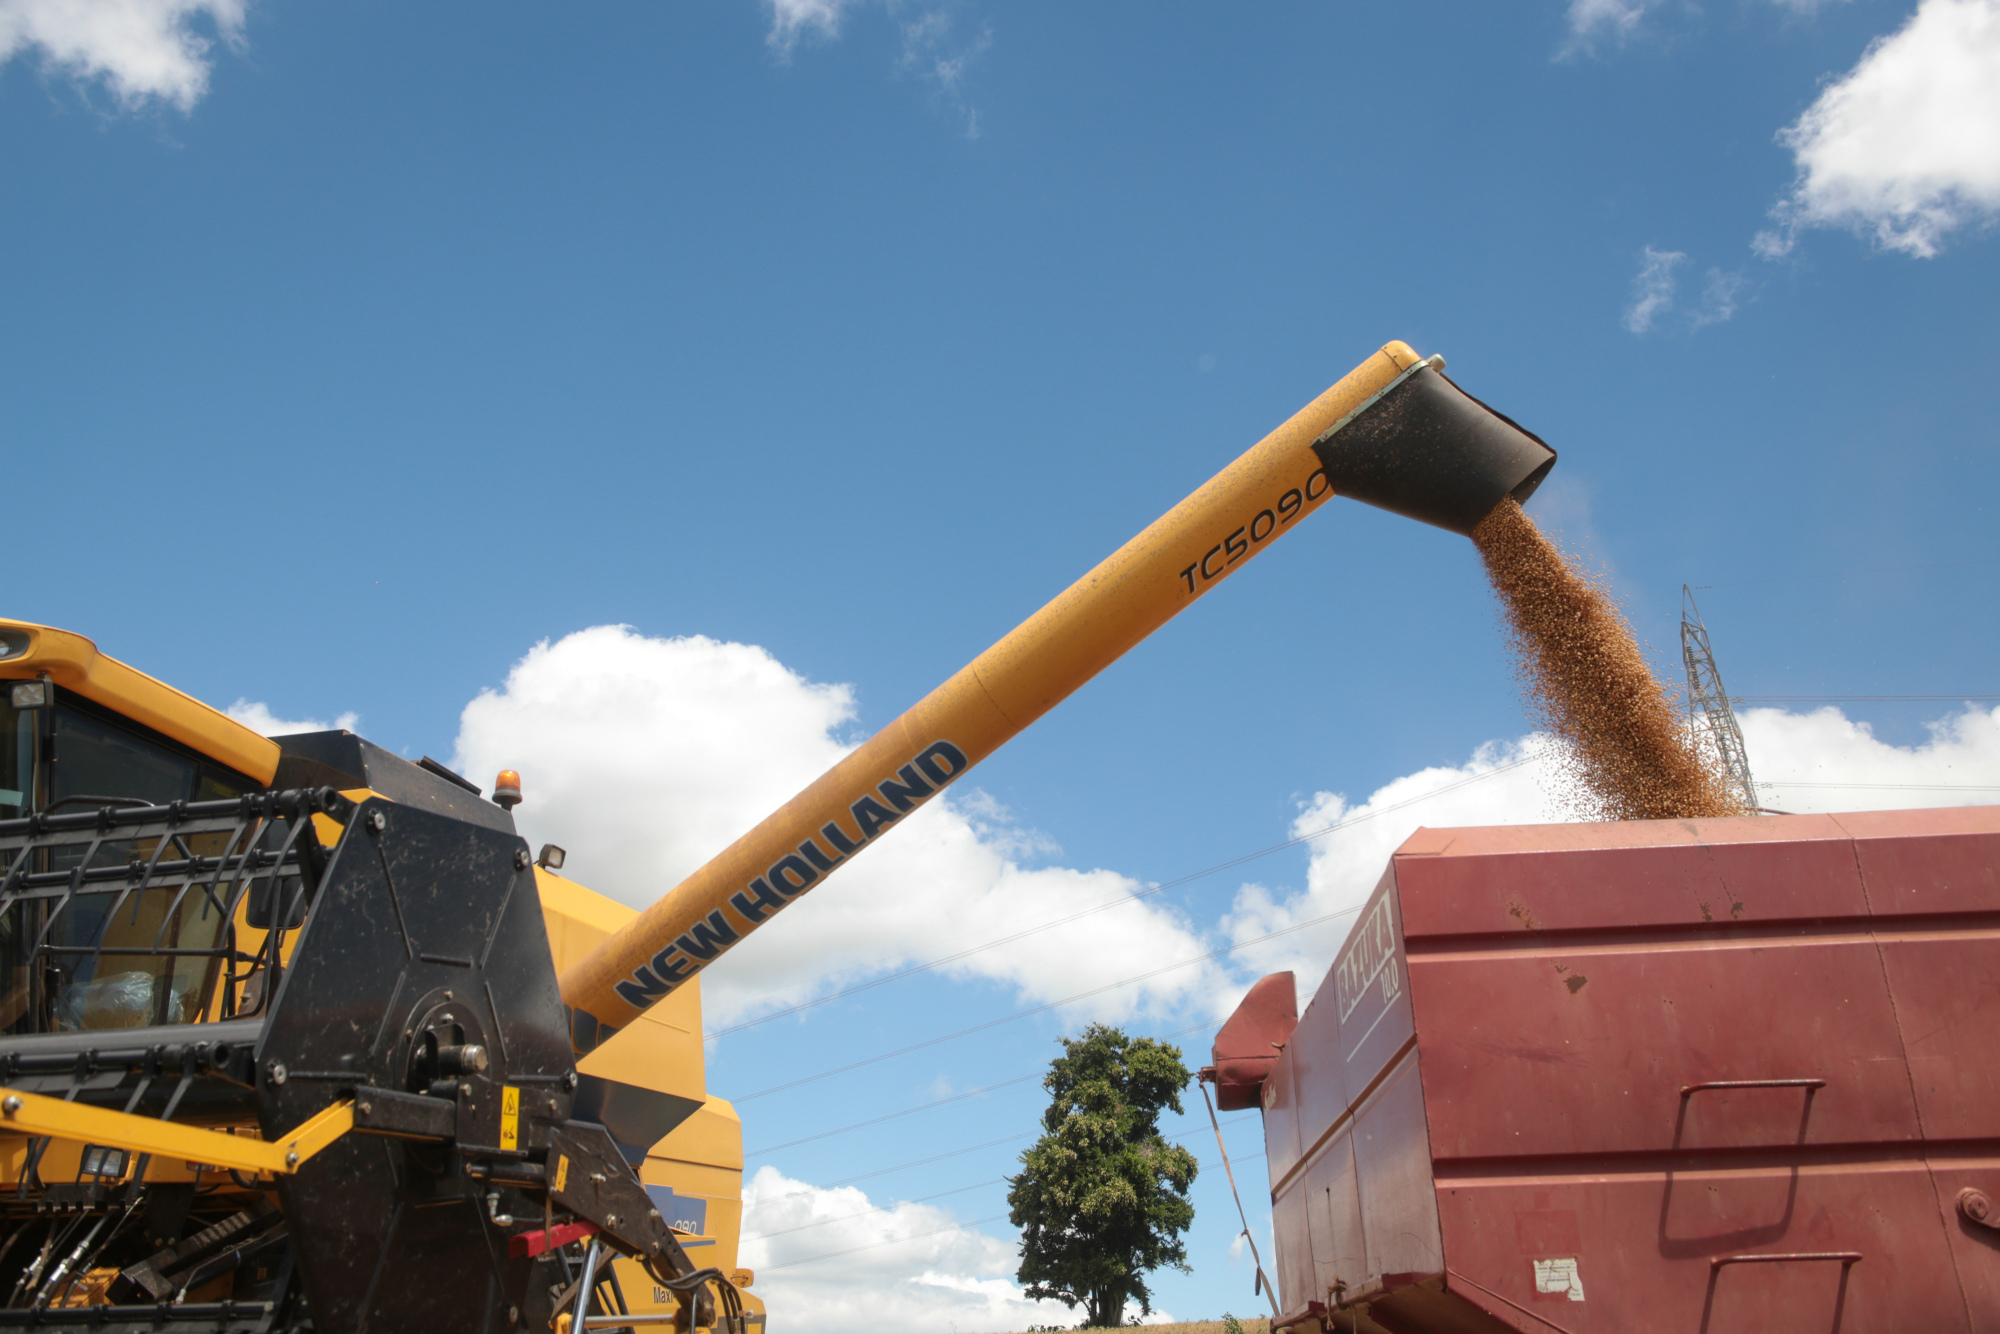 Soybeans are loaded into a truck.